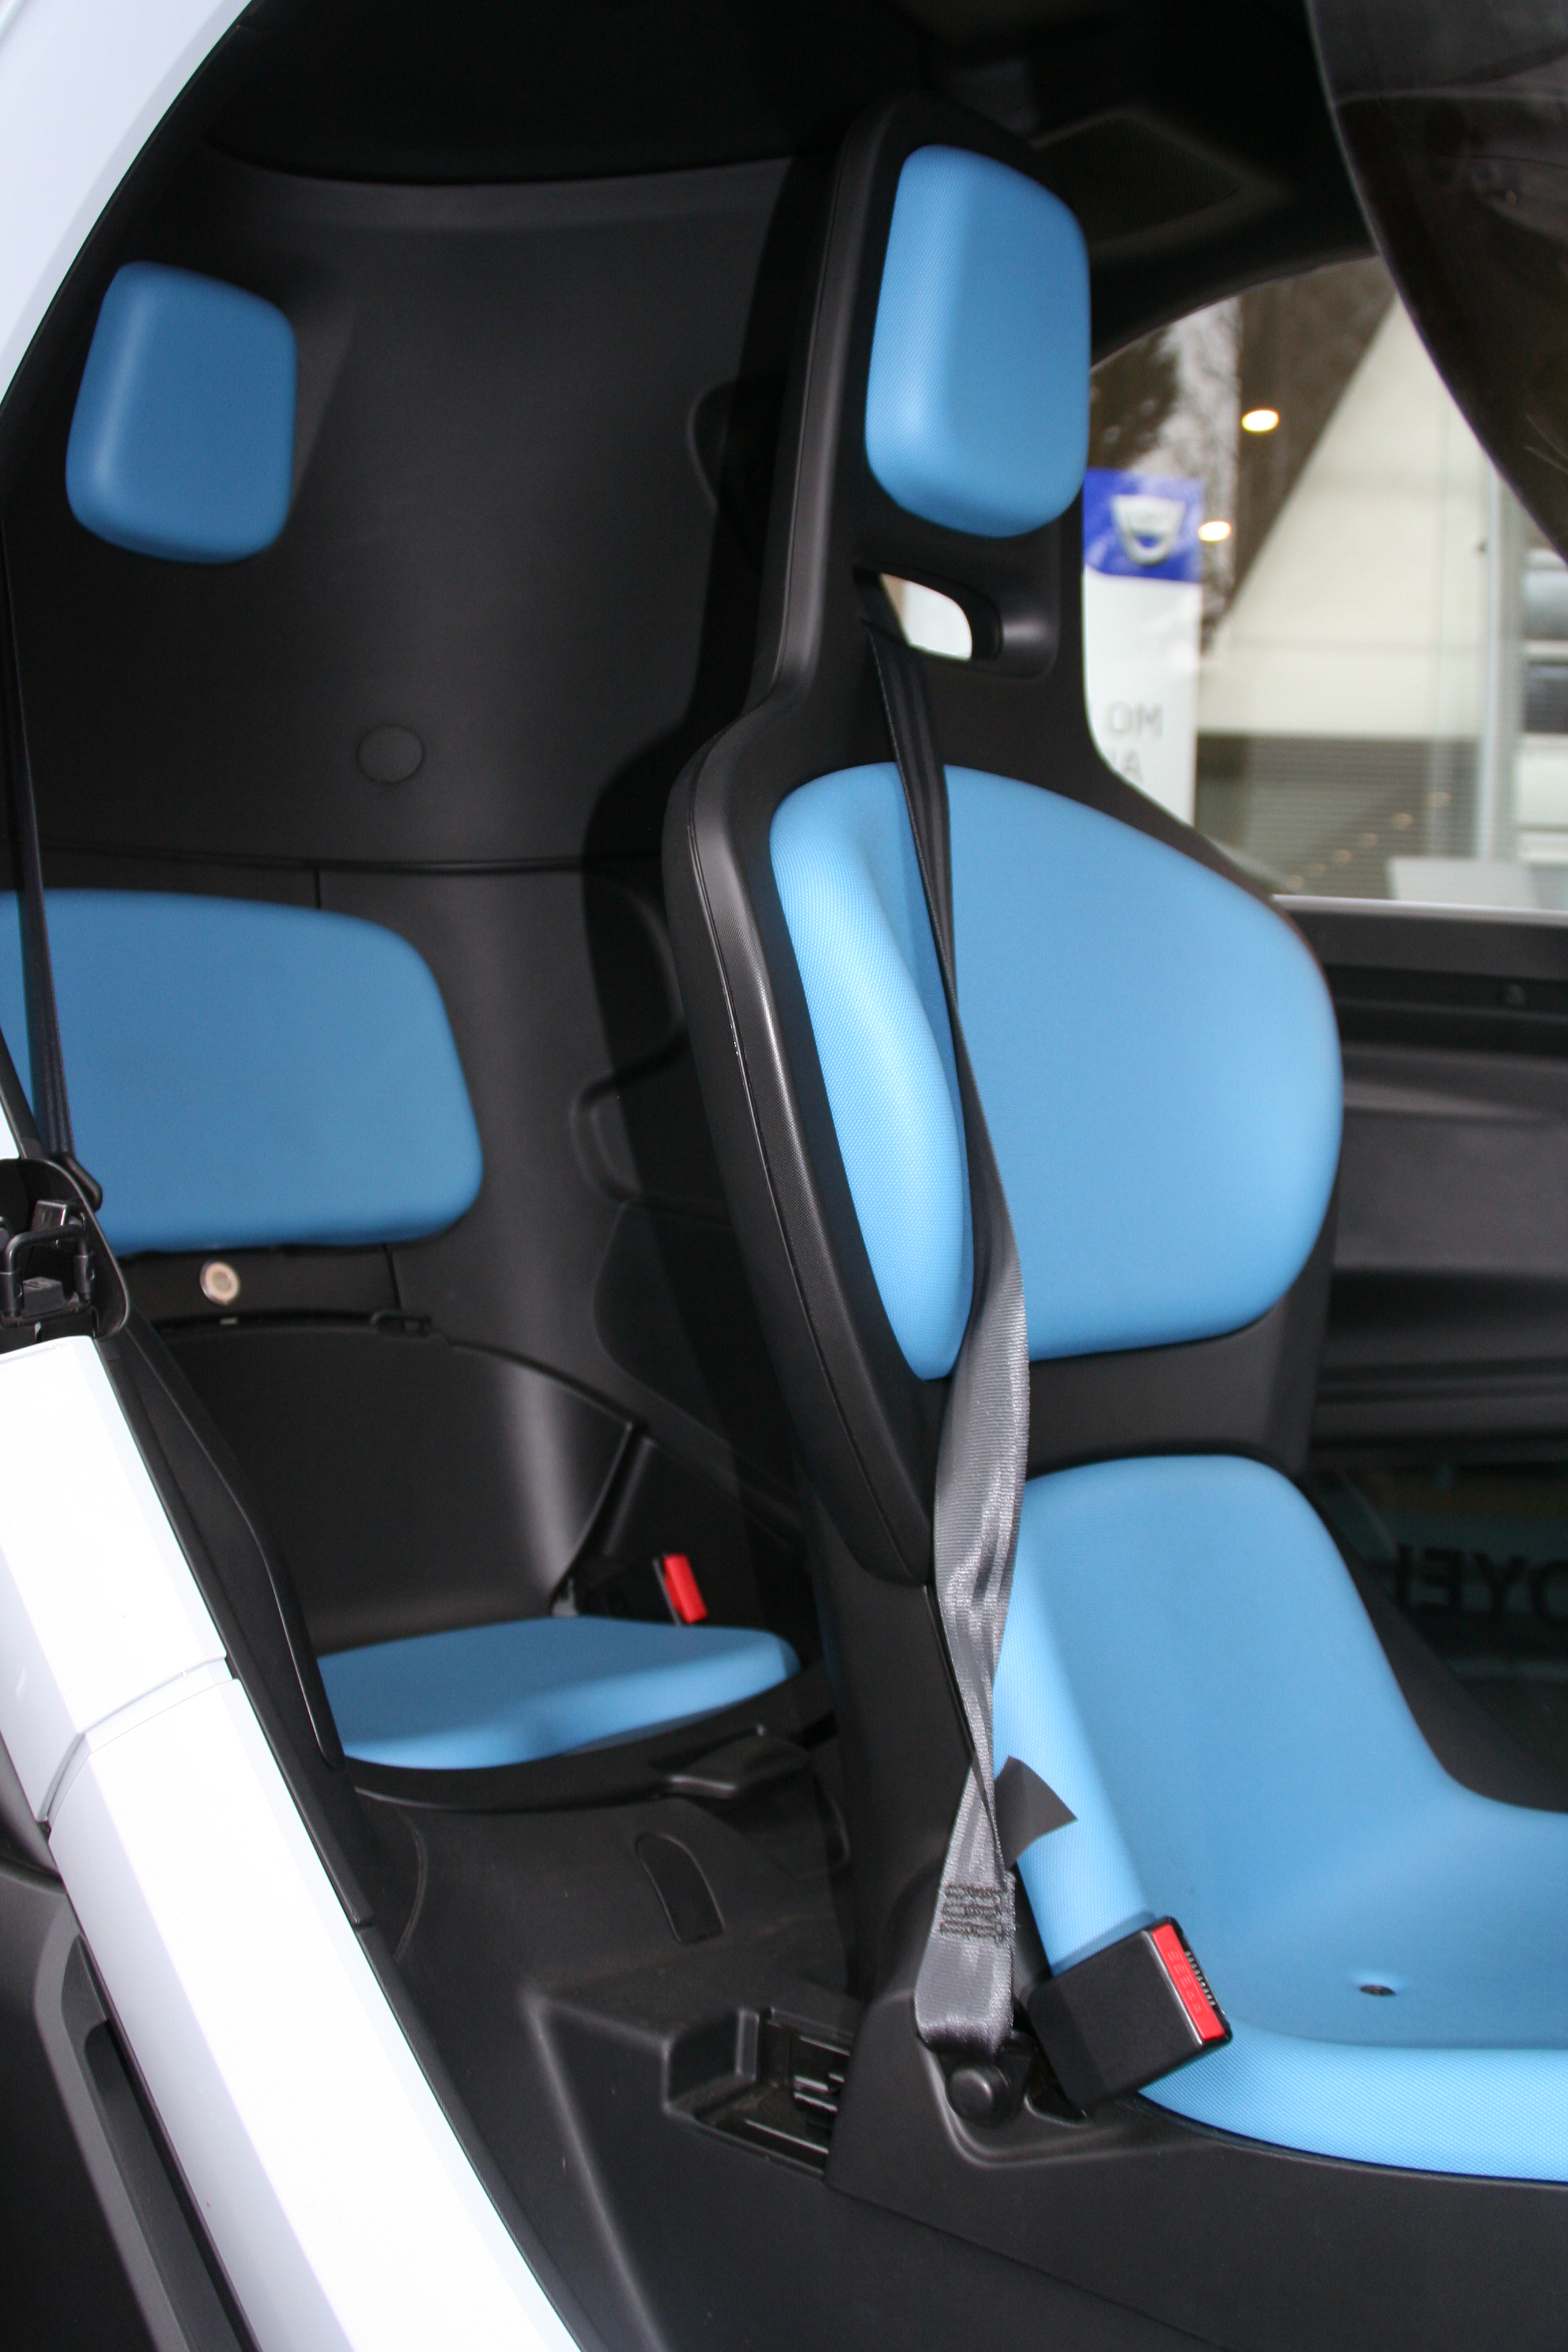 https://upload.wikimedia.org/wikipedia/commons/b/b5/Interieur_Renault_Twizy.JPG